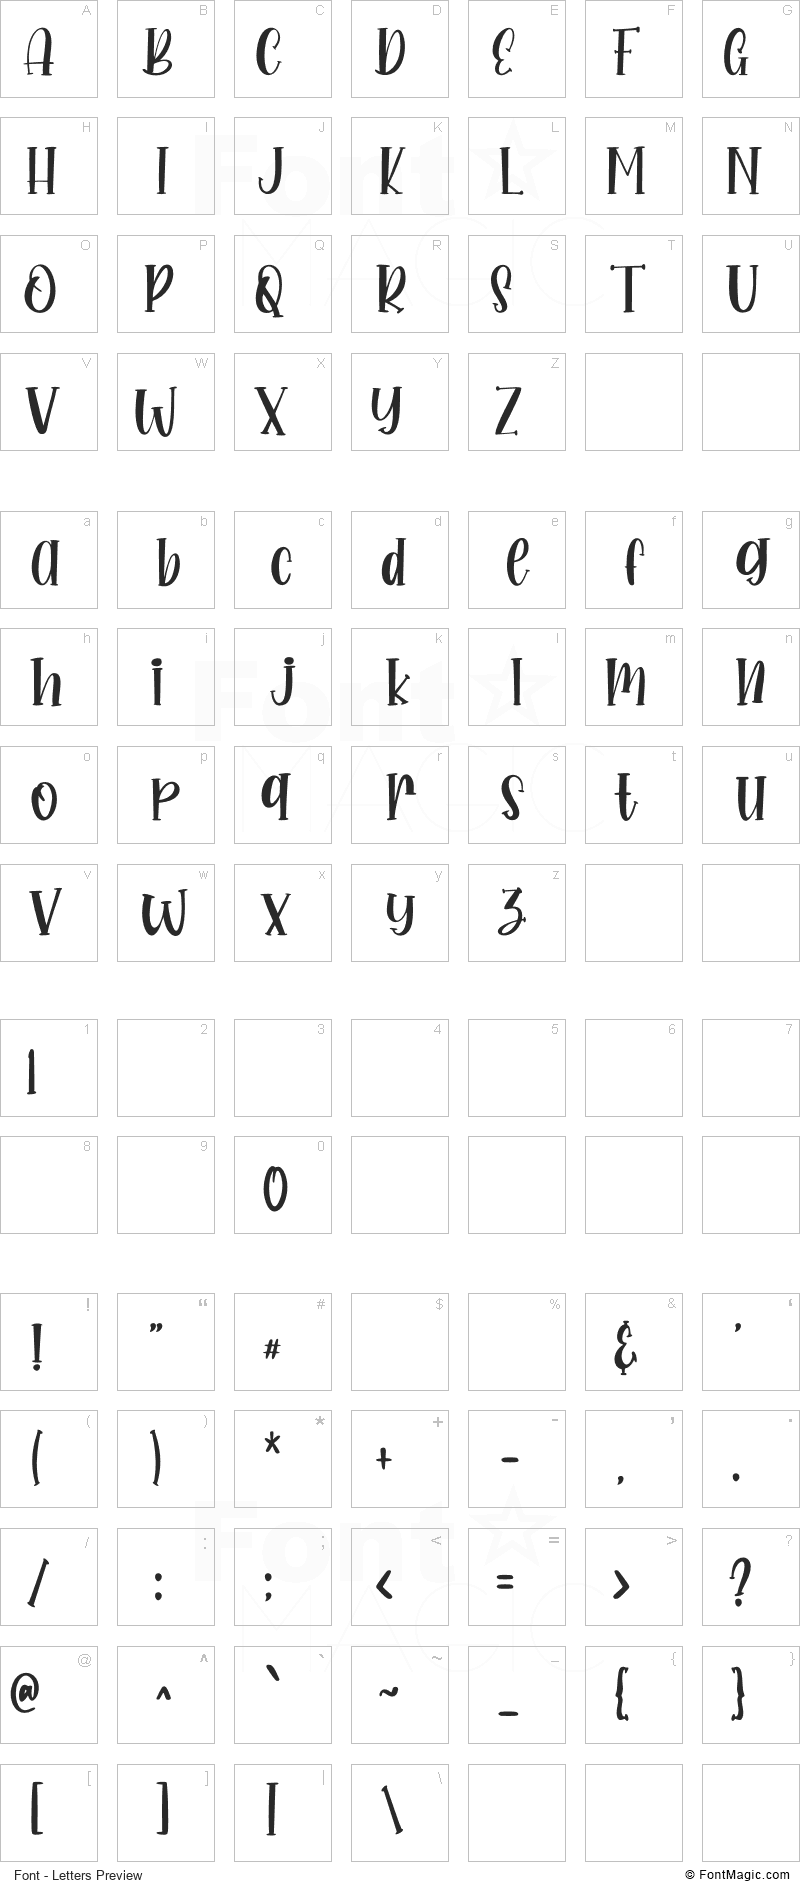 Sweety Font - All Latters Preview Chart